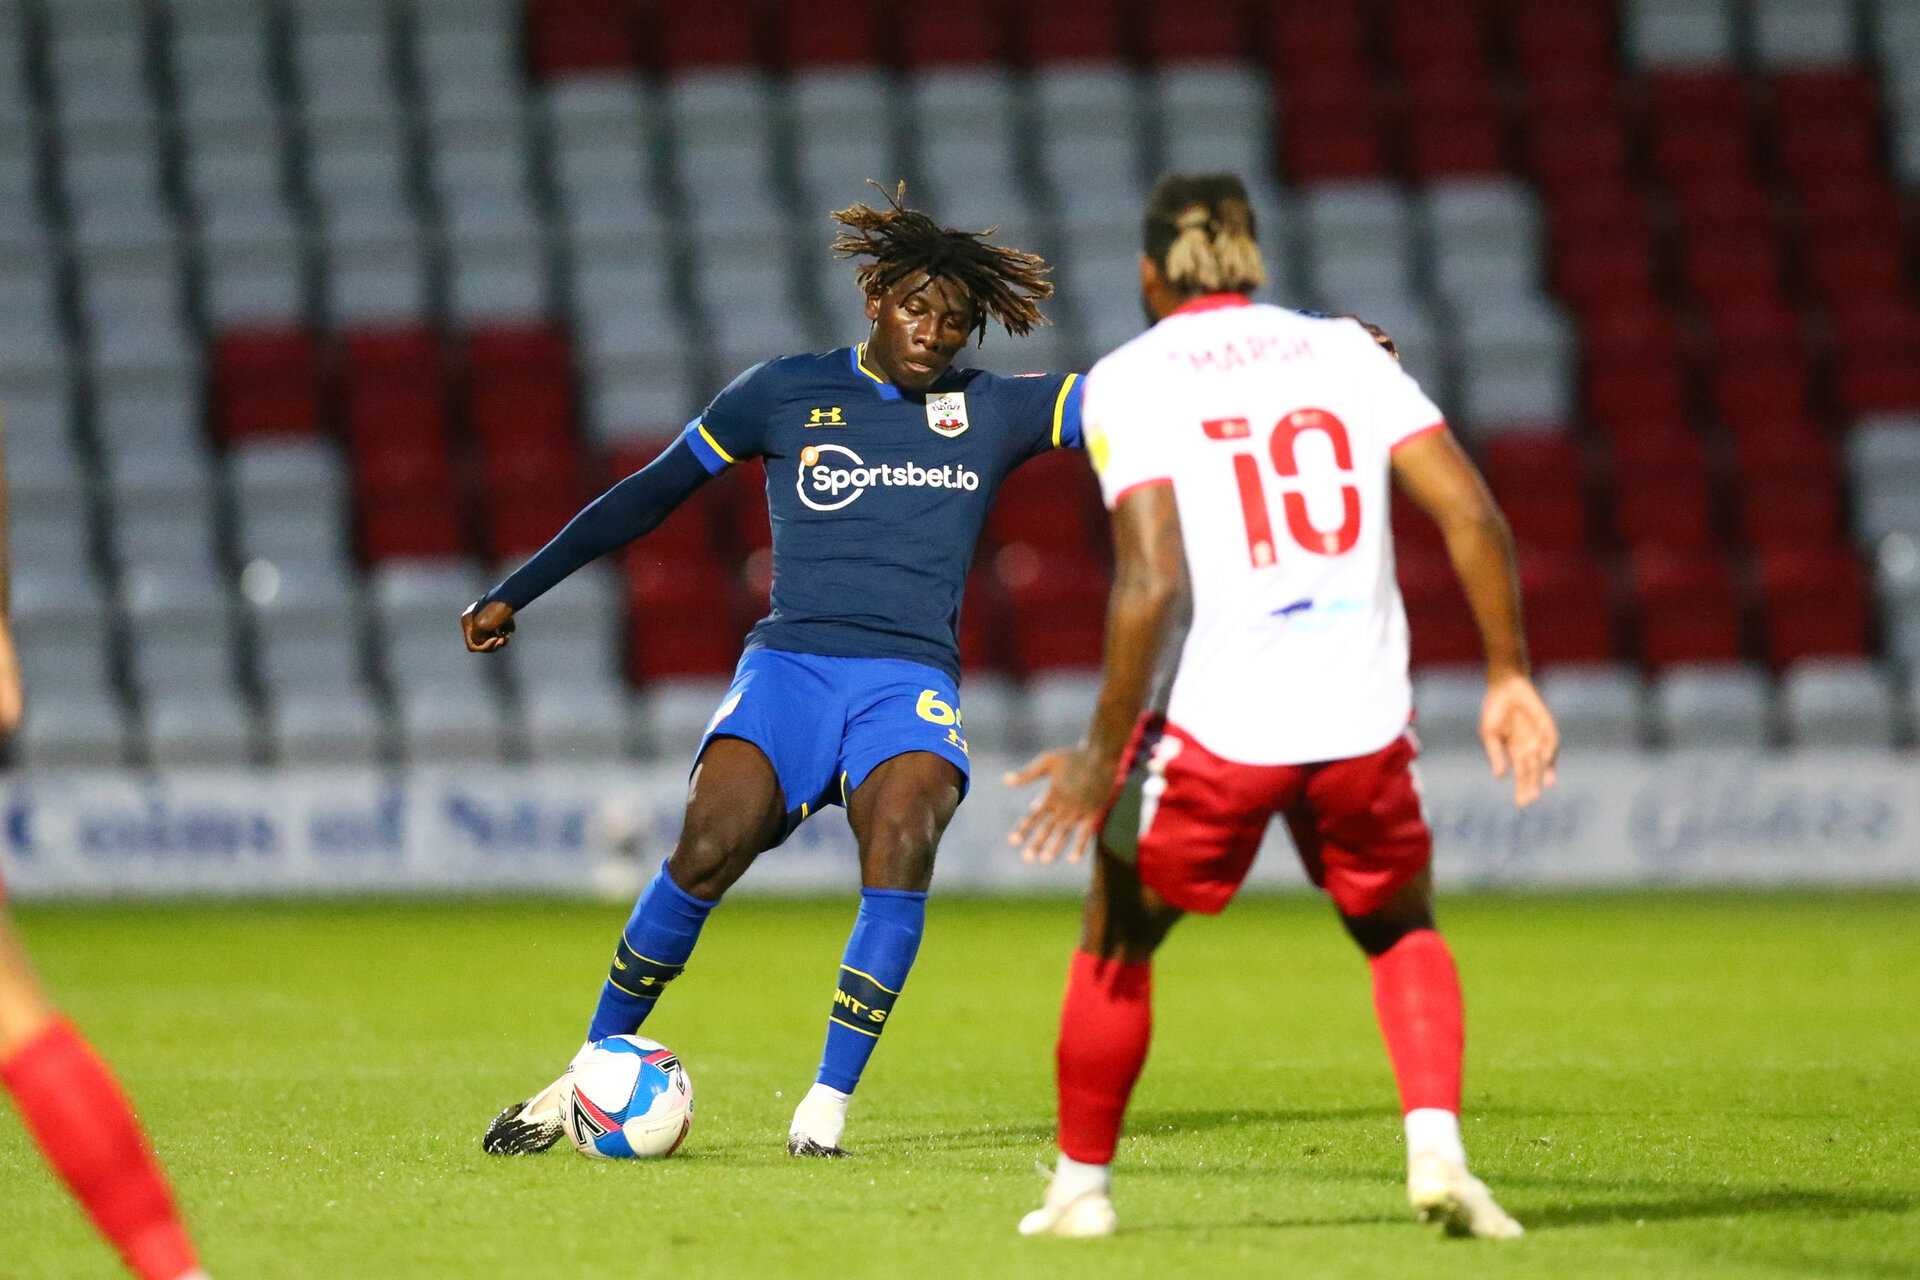 STEVENAGE, ENGLAND - SEPTEMBER 22: during the EFL Trophy match between Stevenage FC and Southampton FC B Team  at the Lamex Stadium on September 22, 2020 in Stevenage, England. (Photo by Isabelle Field/Southampton FC via Getty Images)